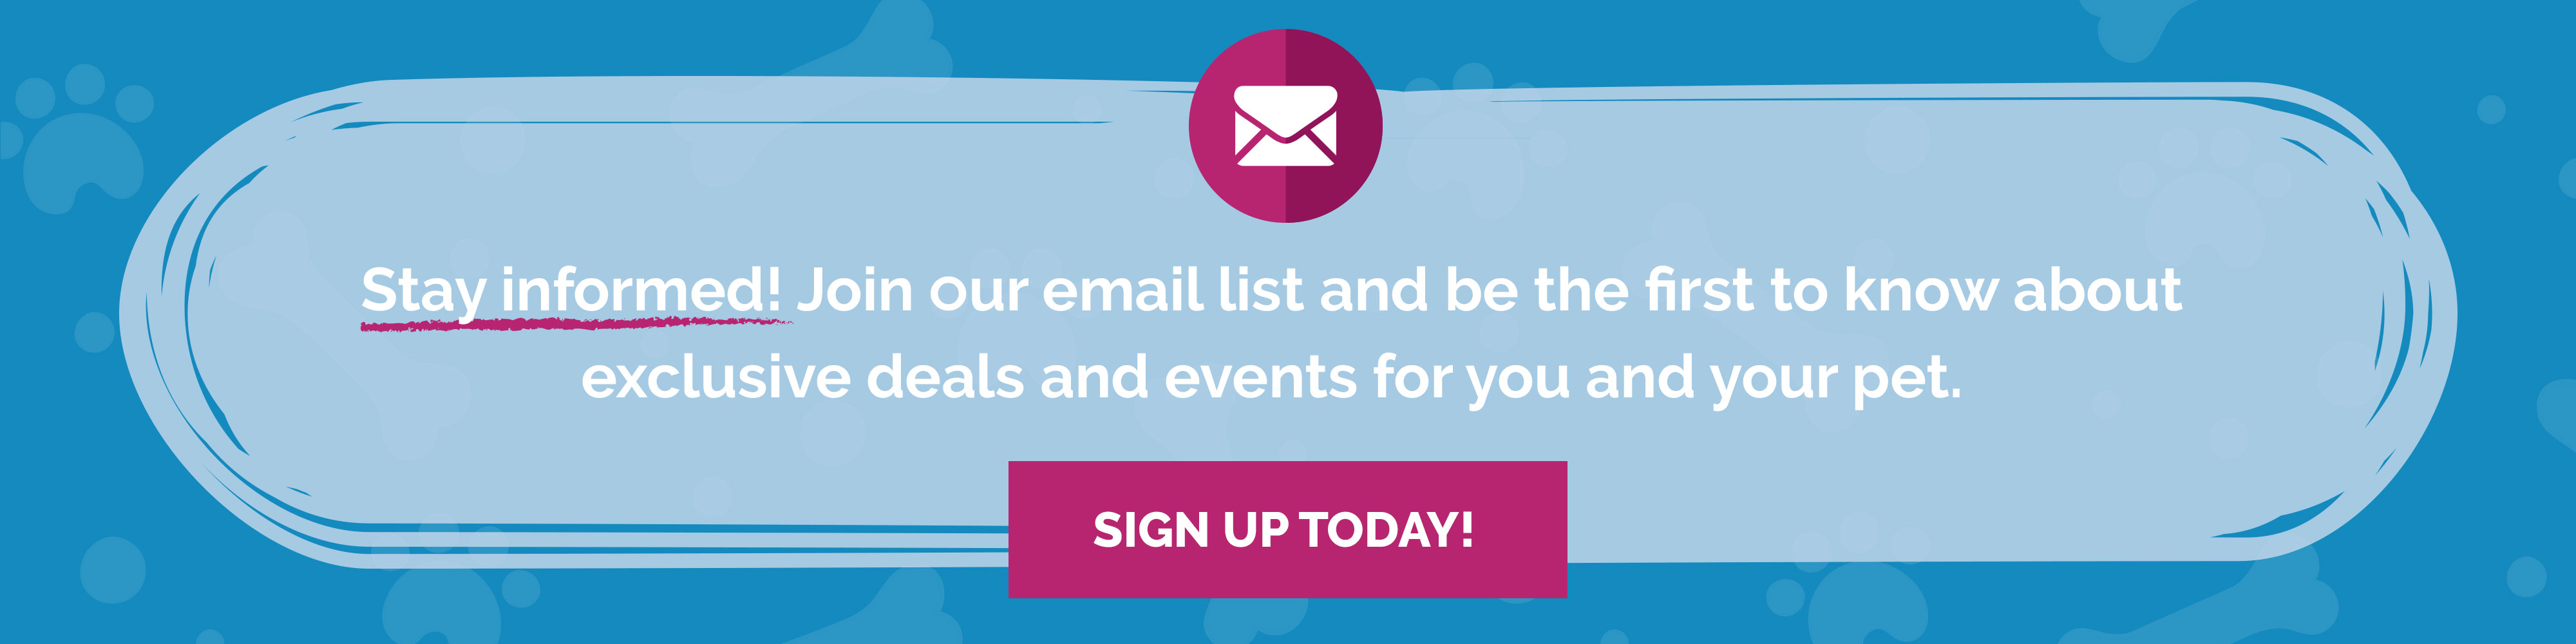 Sign up for the Rumford Pet Email List